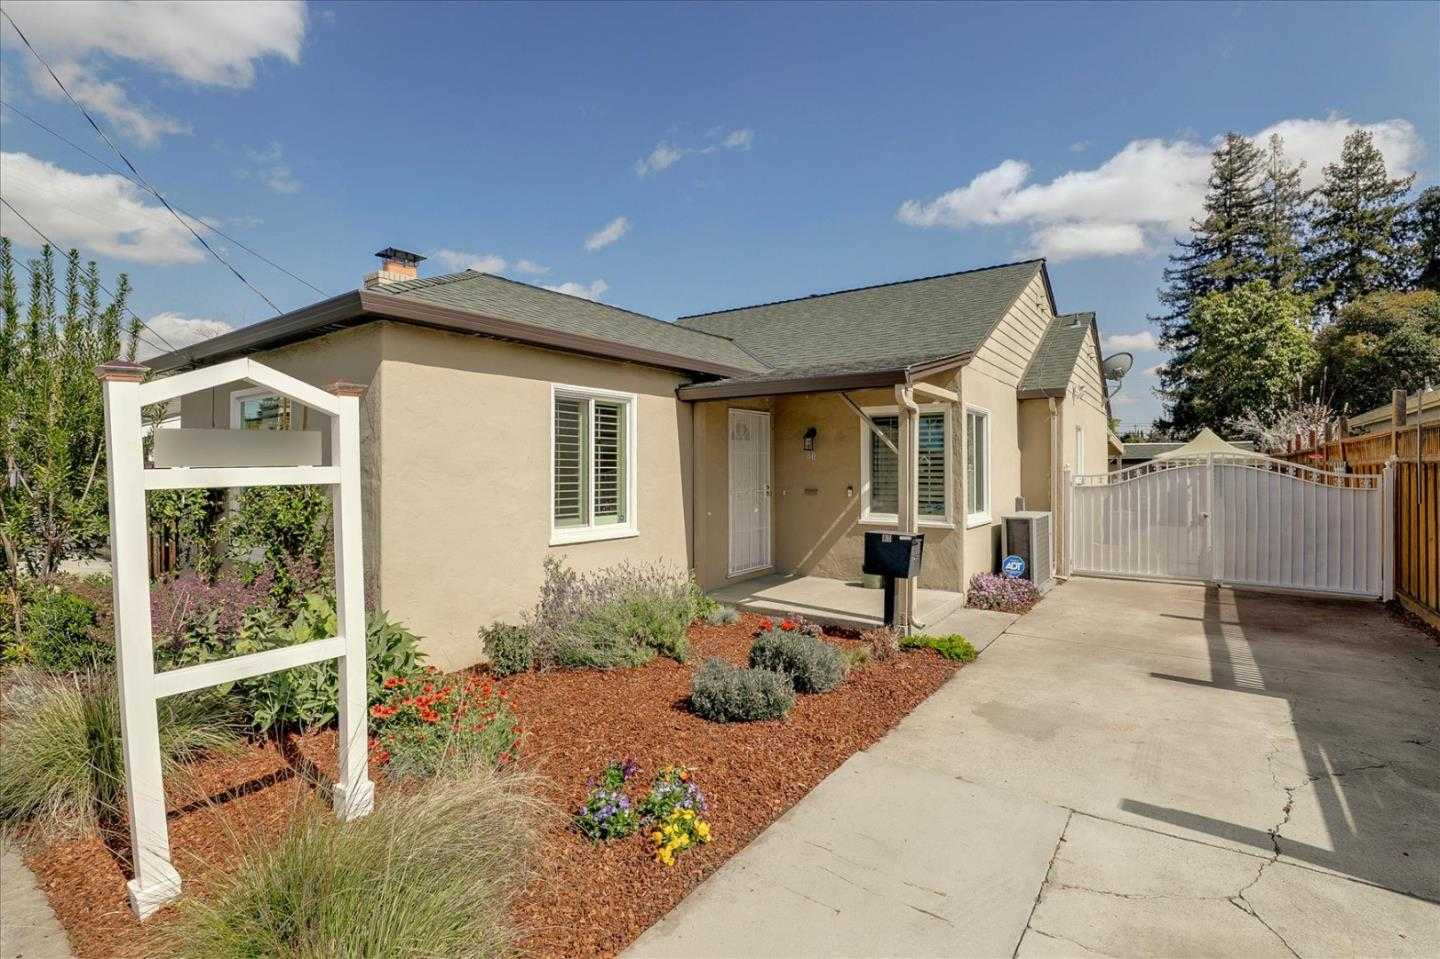 $898,000 - 2Br/1Ba -  for Sale in San Jose